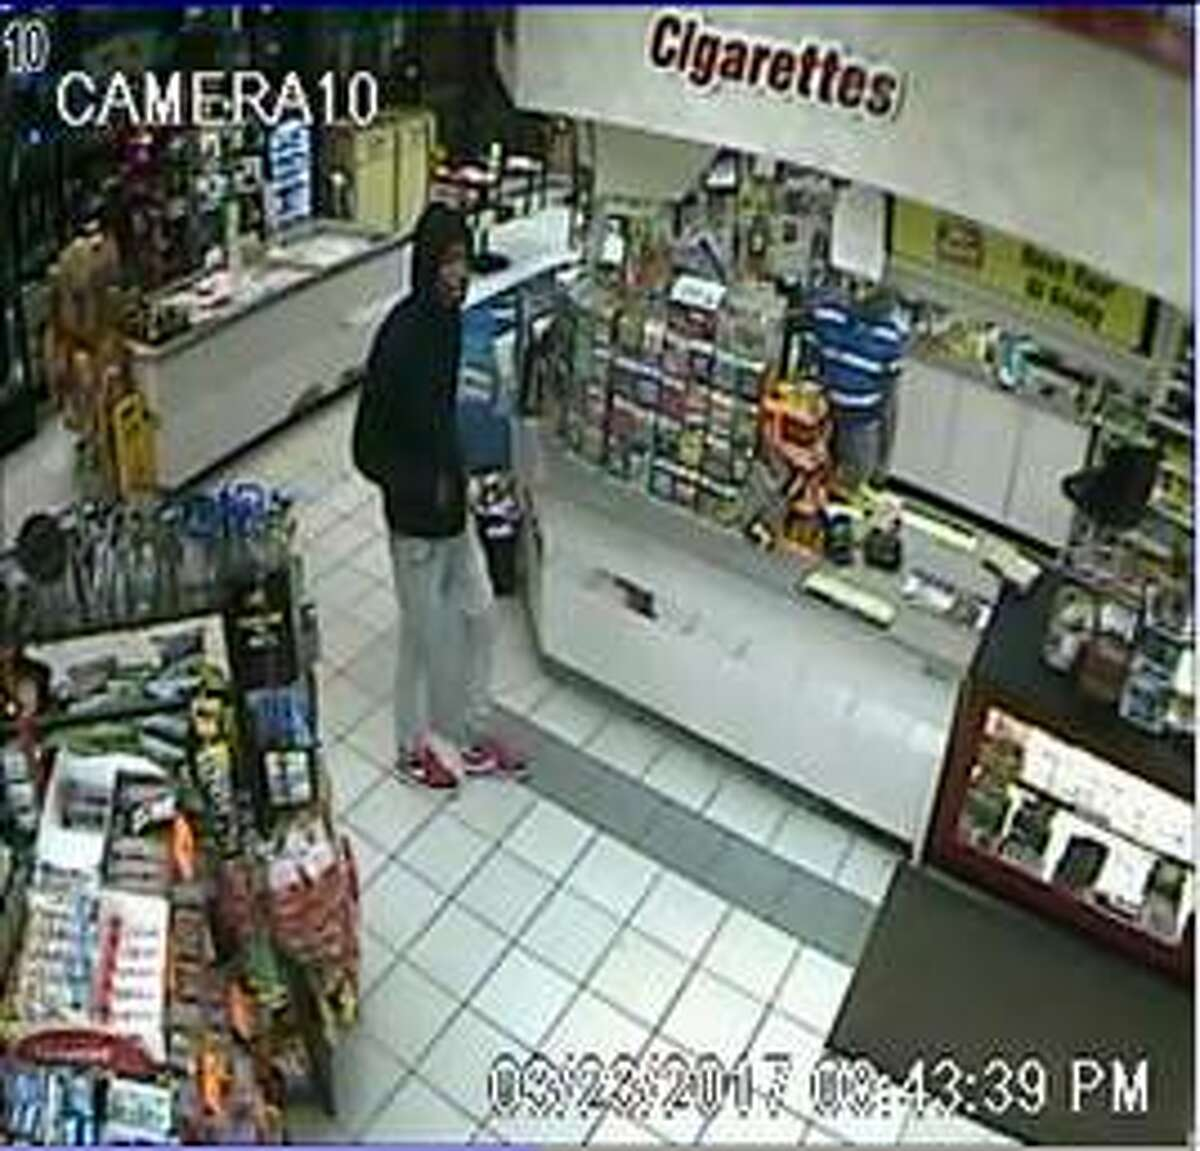 Sugar Land investigators are looking for two men who robbed a Citgo gas station at gunpoint on Thursday, March 23.